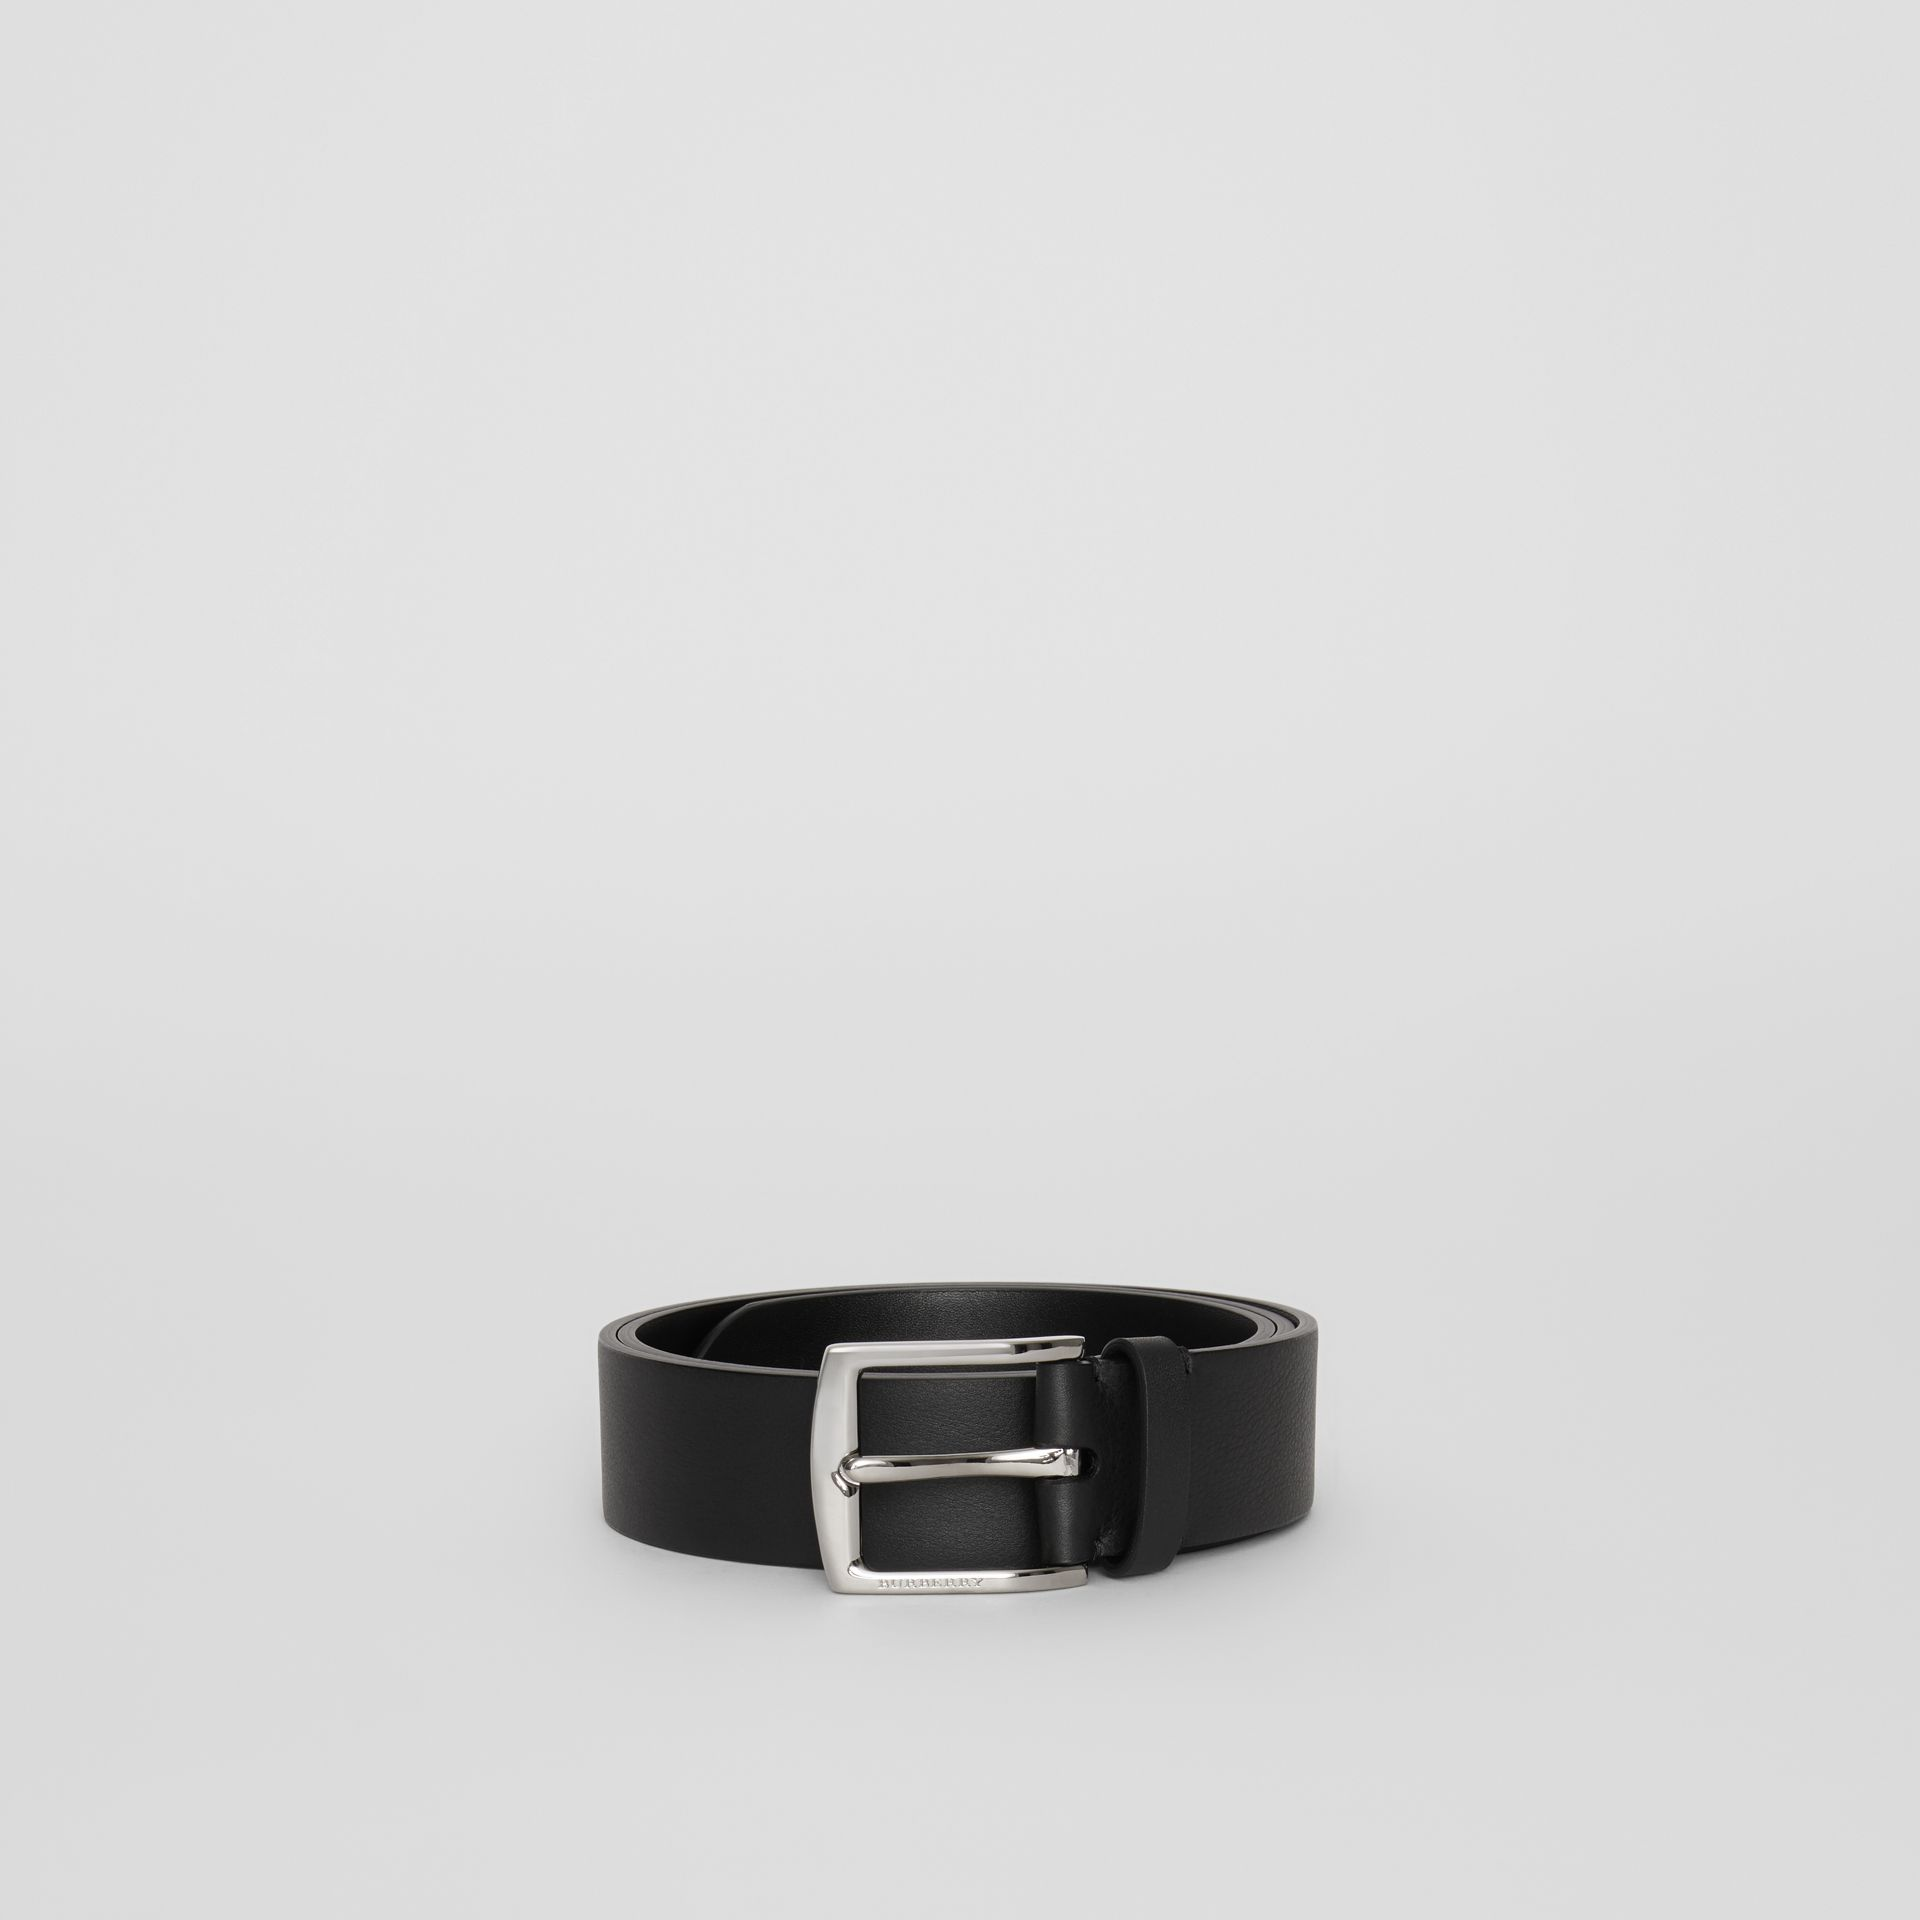 Embossed Crest Leather Belt in Black - Men | Burberry - gallery image 3